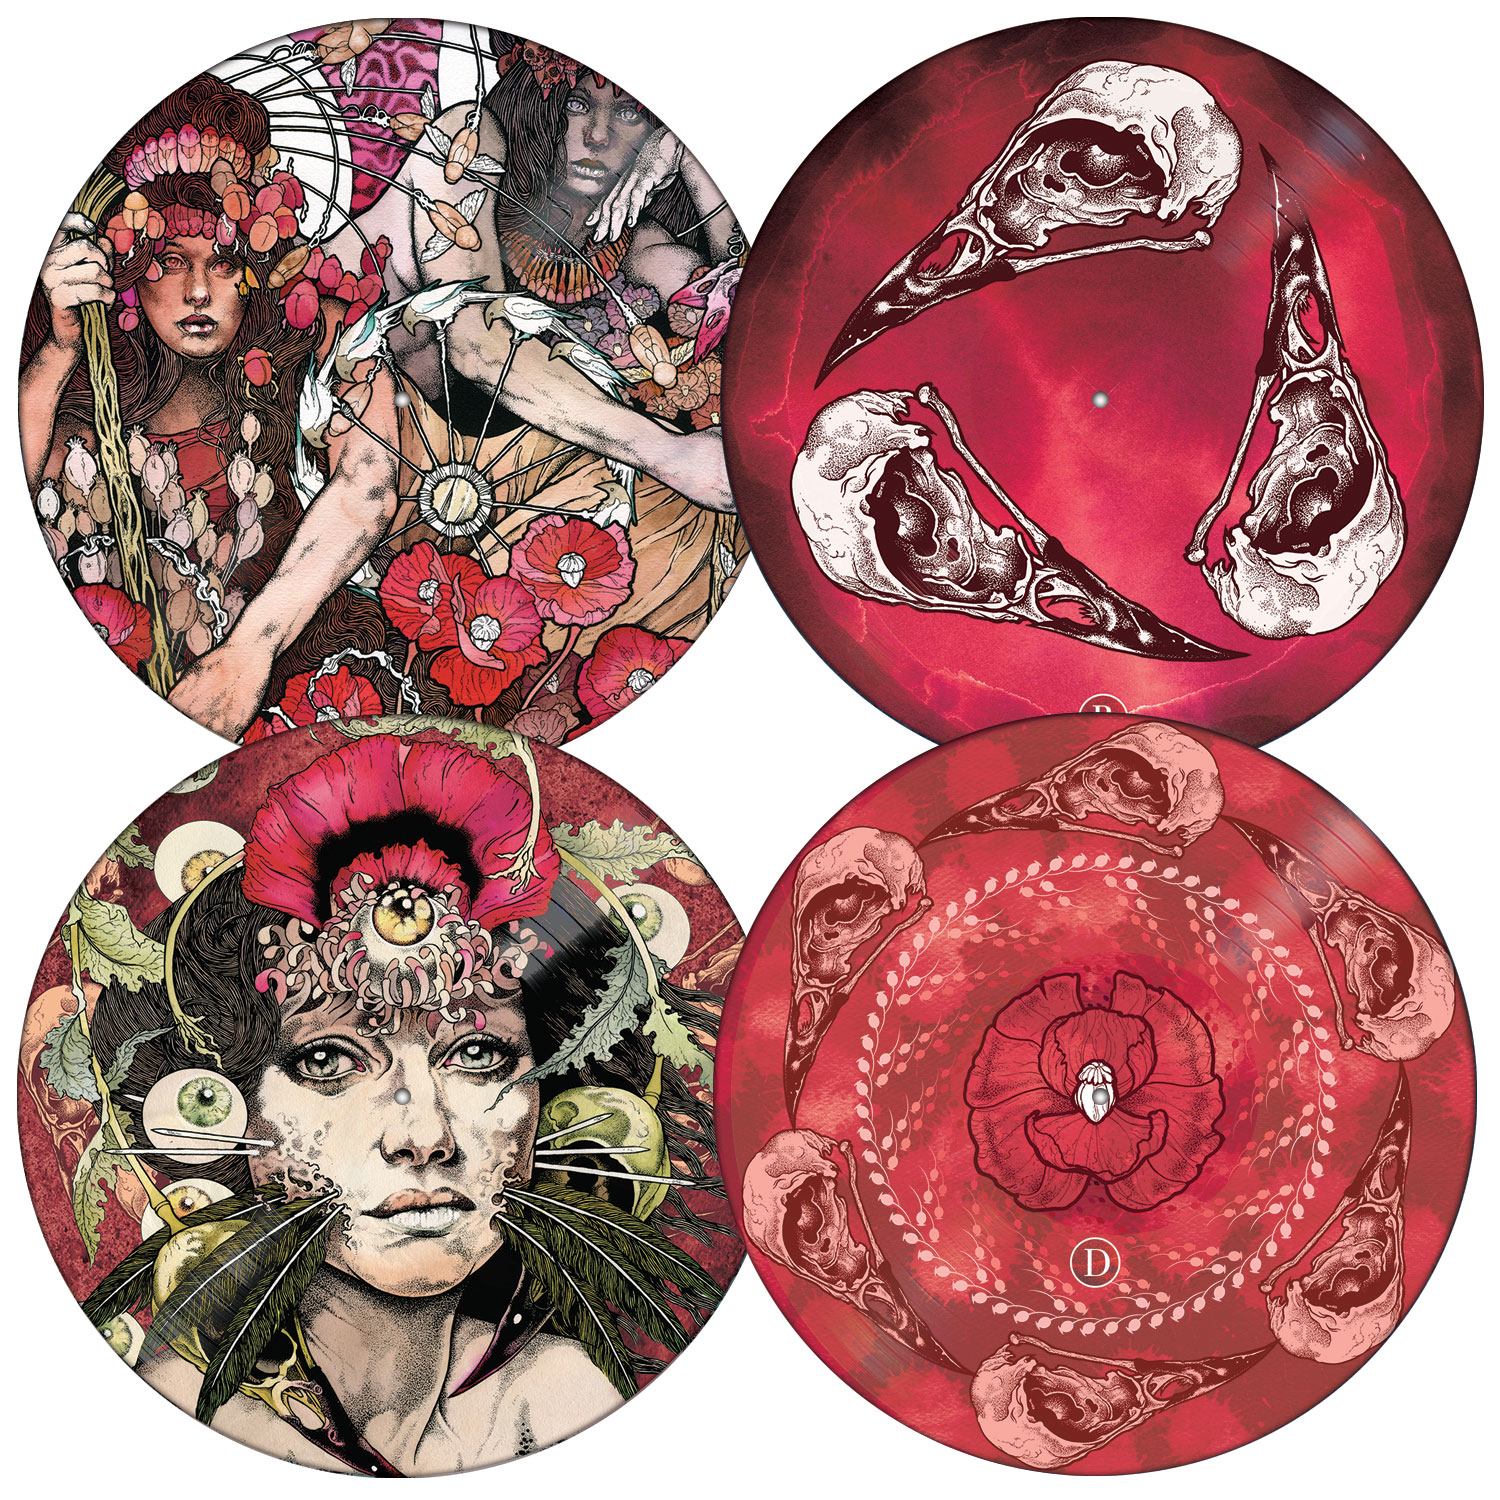 Special Edition Picture Disc 2LP Bundle